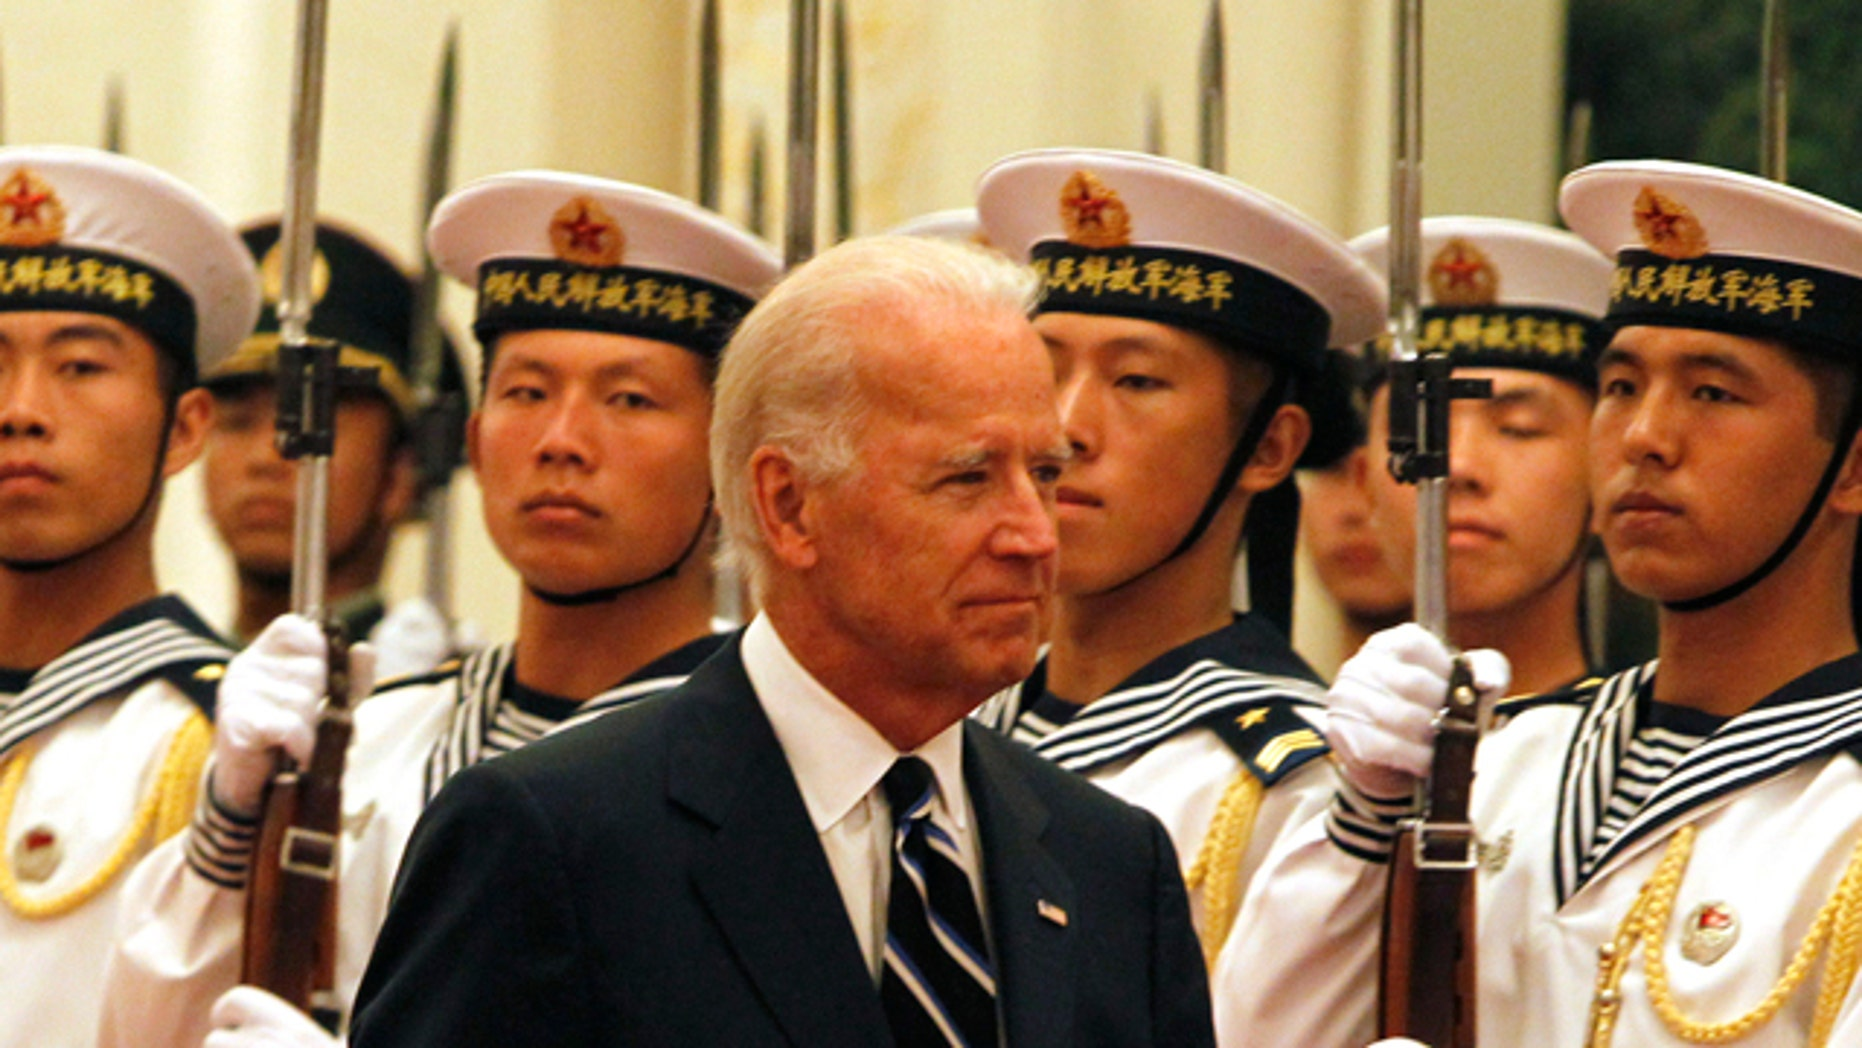 Aug. 18: U.S. Vice President Joseph Biden inspects a guard of honor during a welcome ceremony held at the Great Hall of the People in Beijing, China.